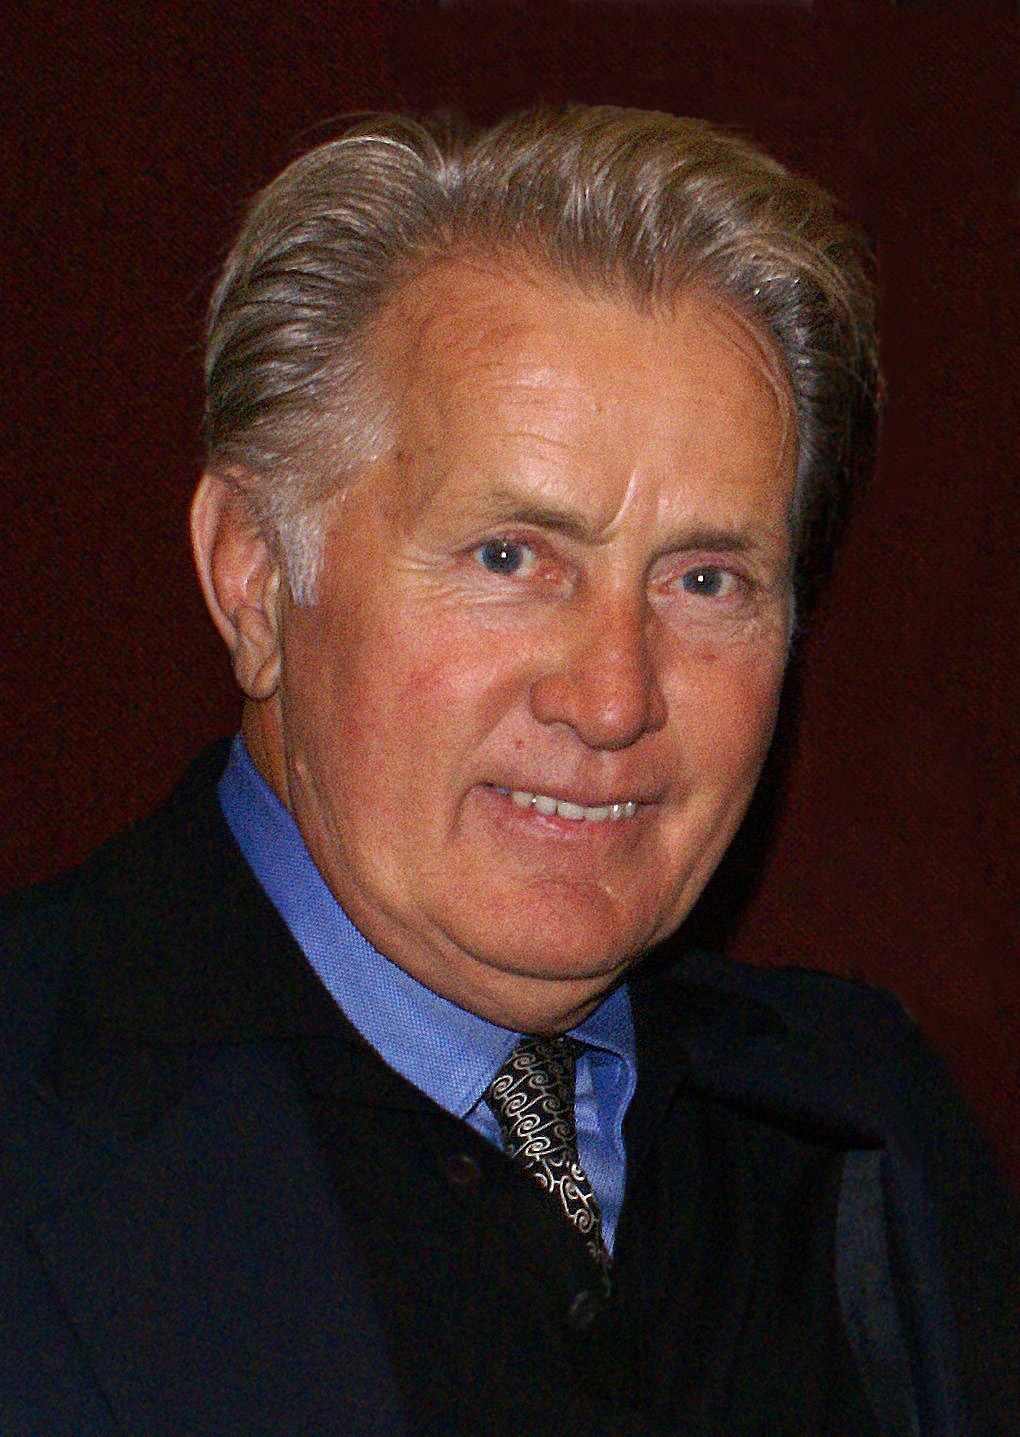 featuring multi-award winning actor and social activist Martin Sheen.